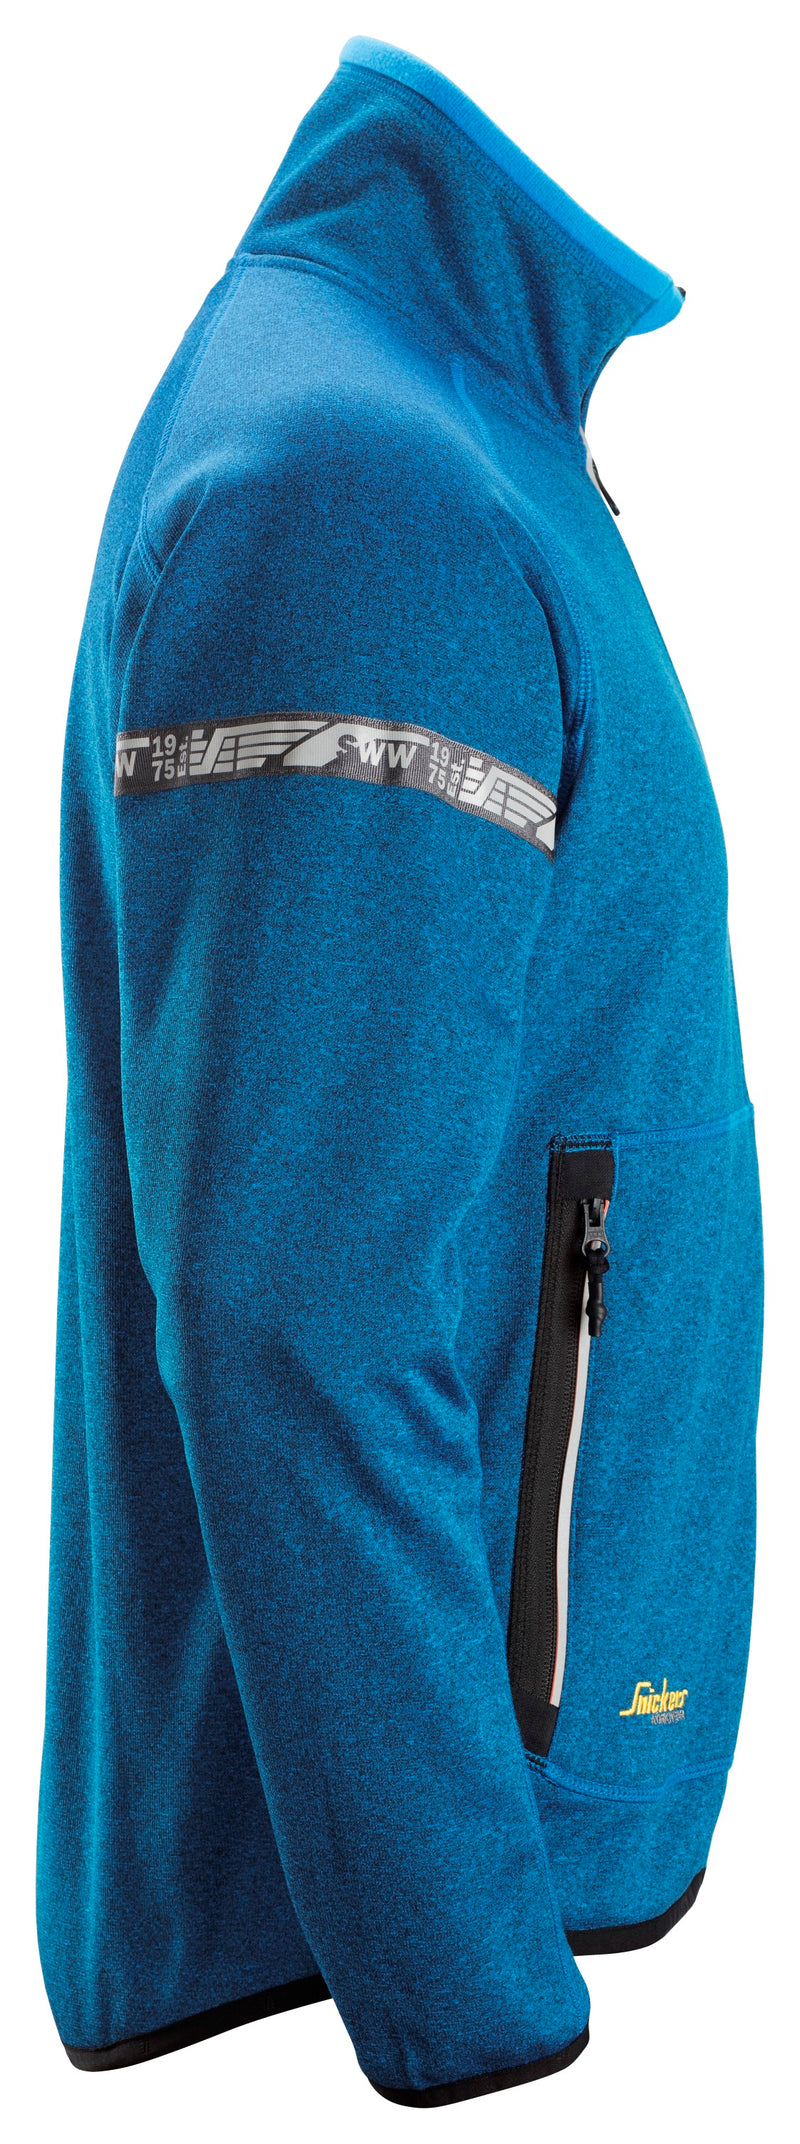 Snickers 8004 AW 37.5® Fleece Jack - Snickers Werkkledij